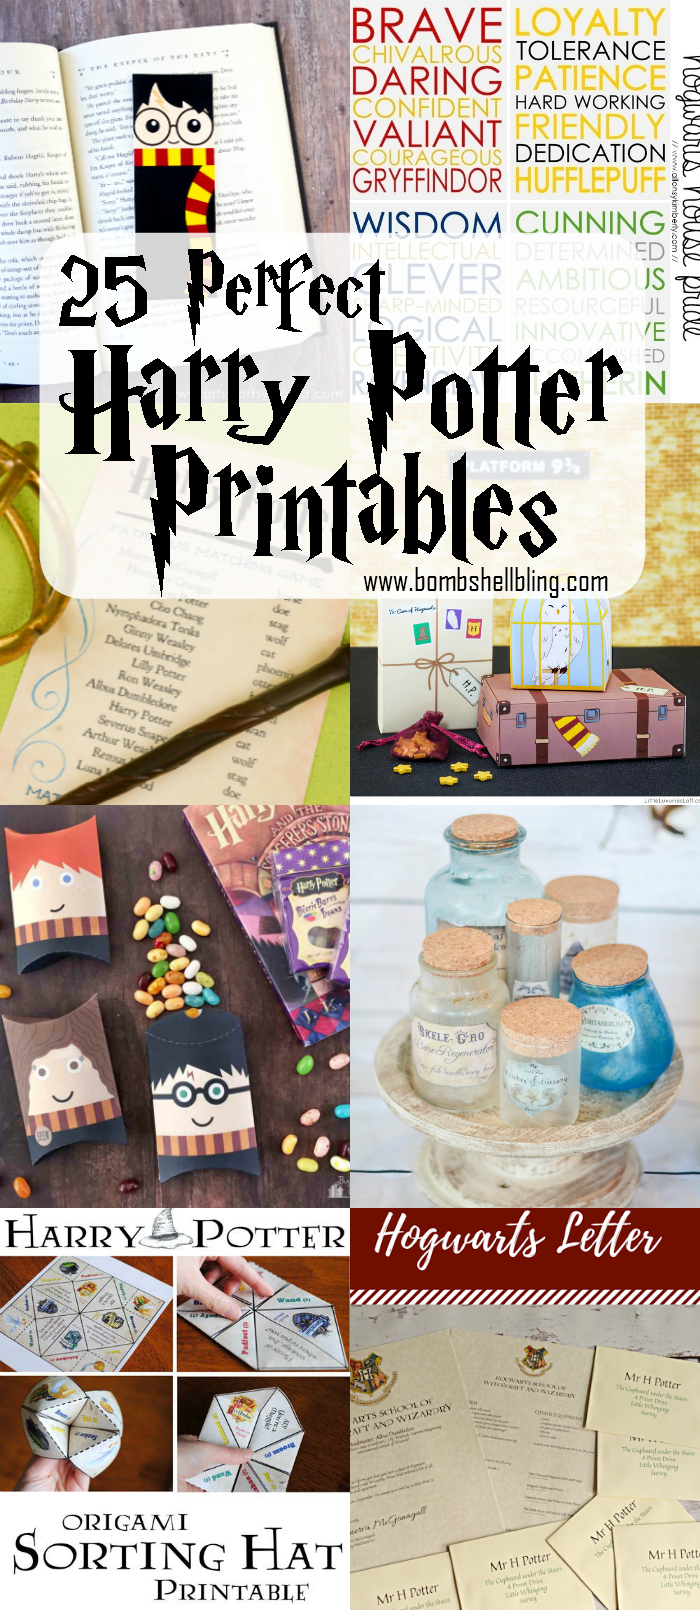 photograph regarding Harry Potter Bookmarks Printable named 25 Ideal Harry Potter Printables - Gathered via Bombs